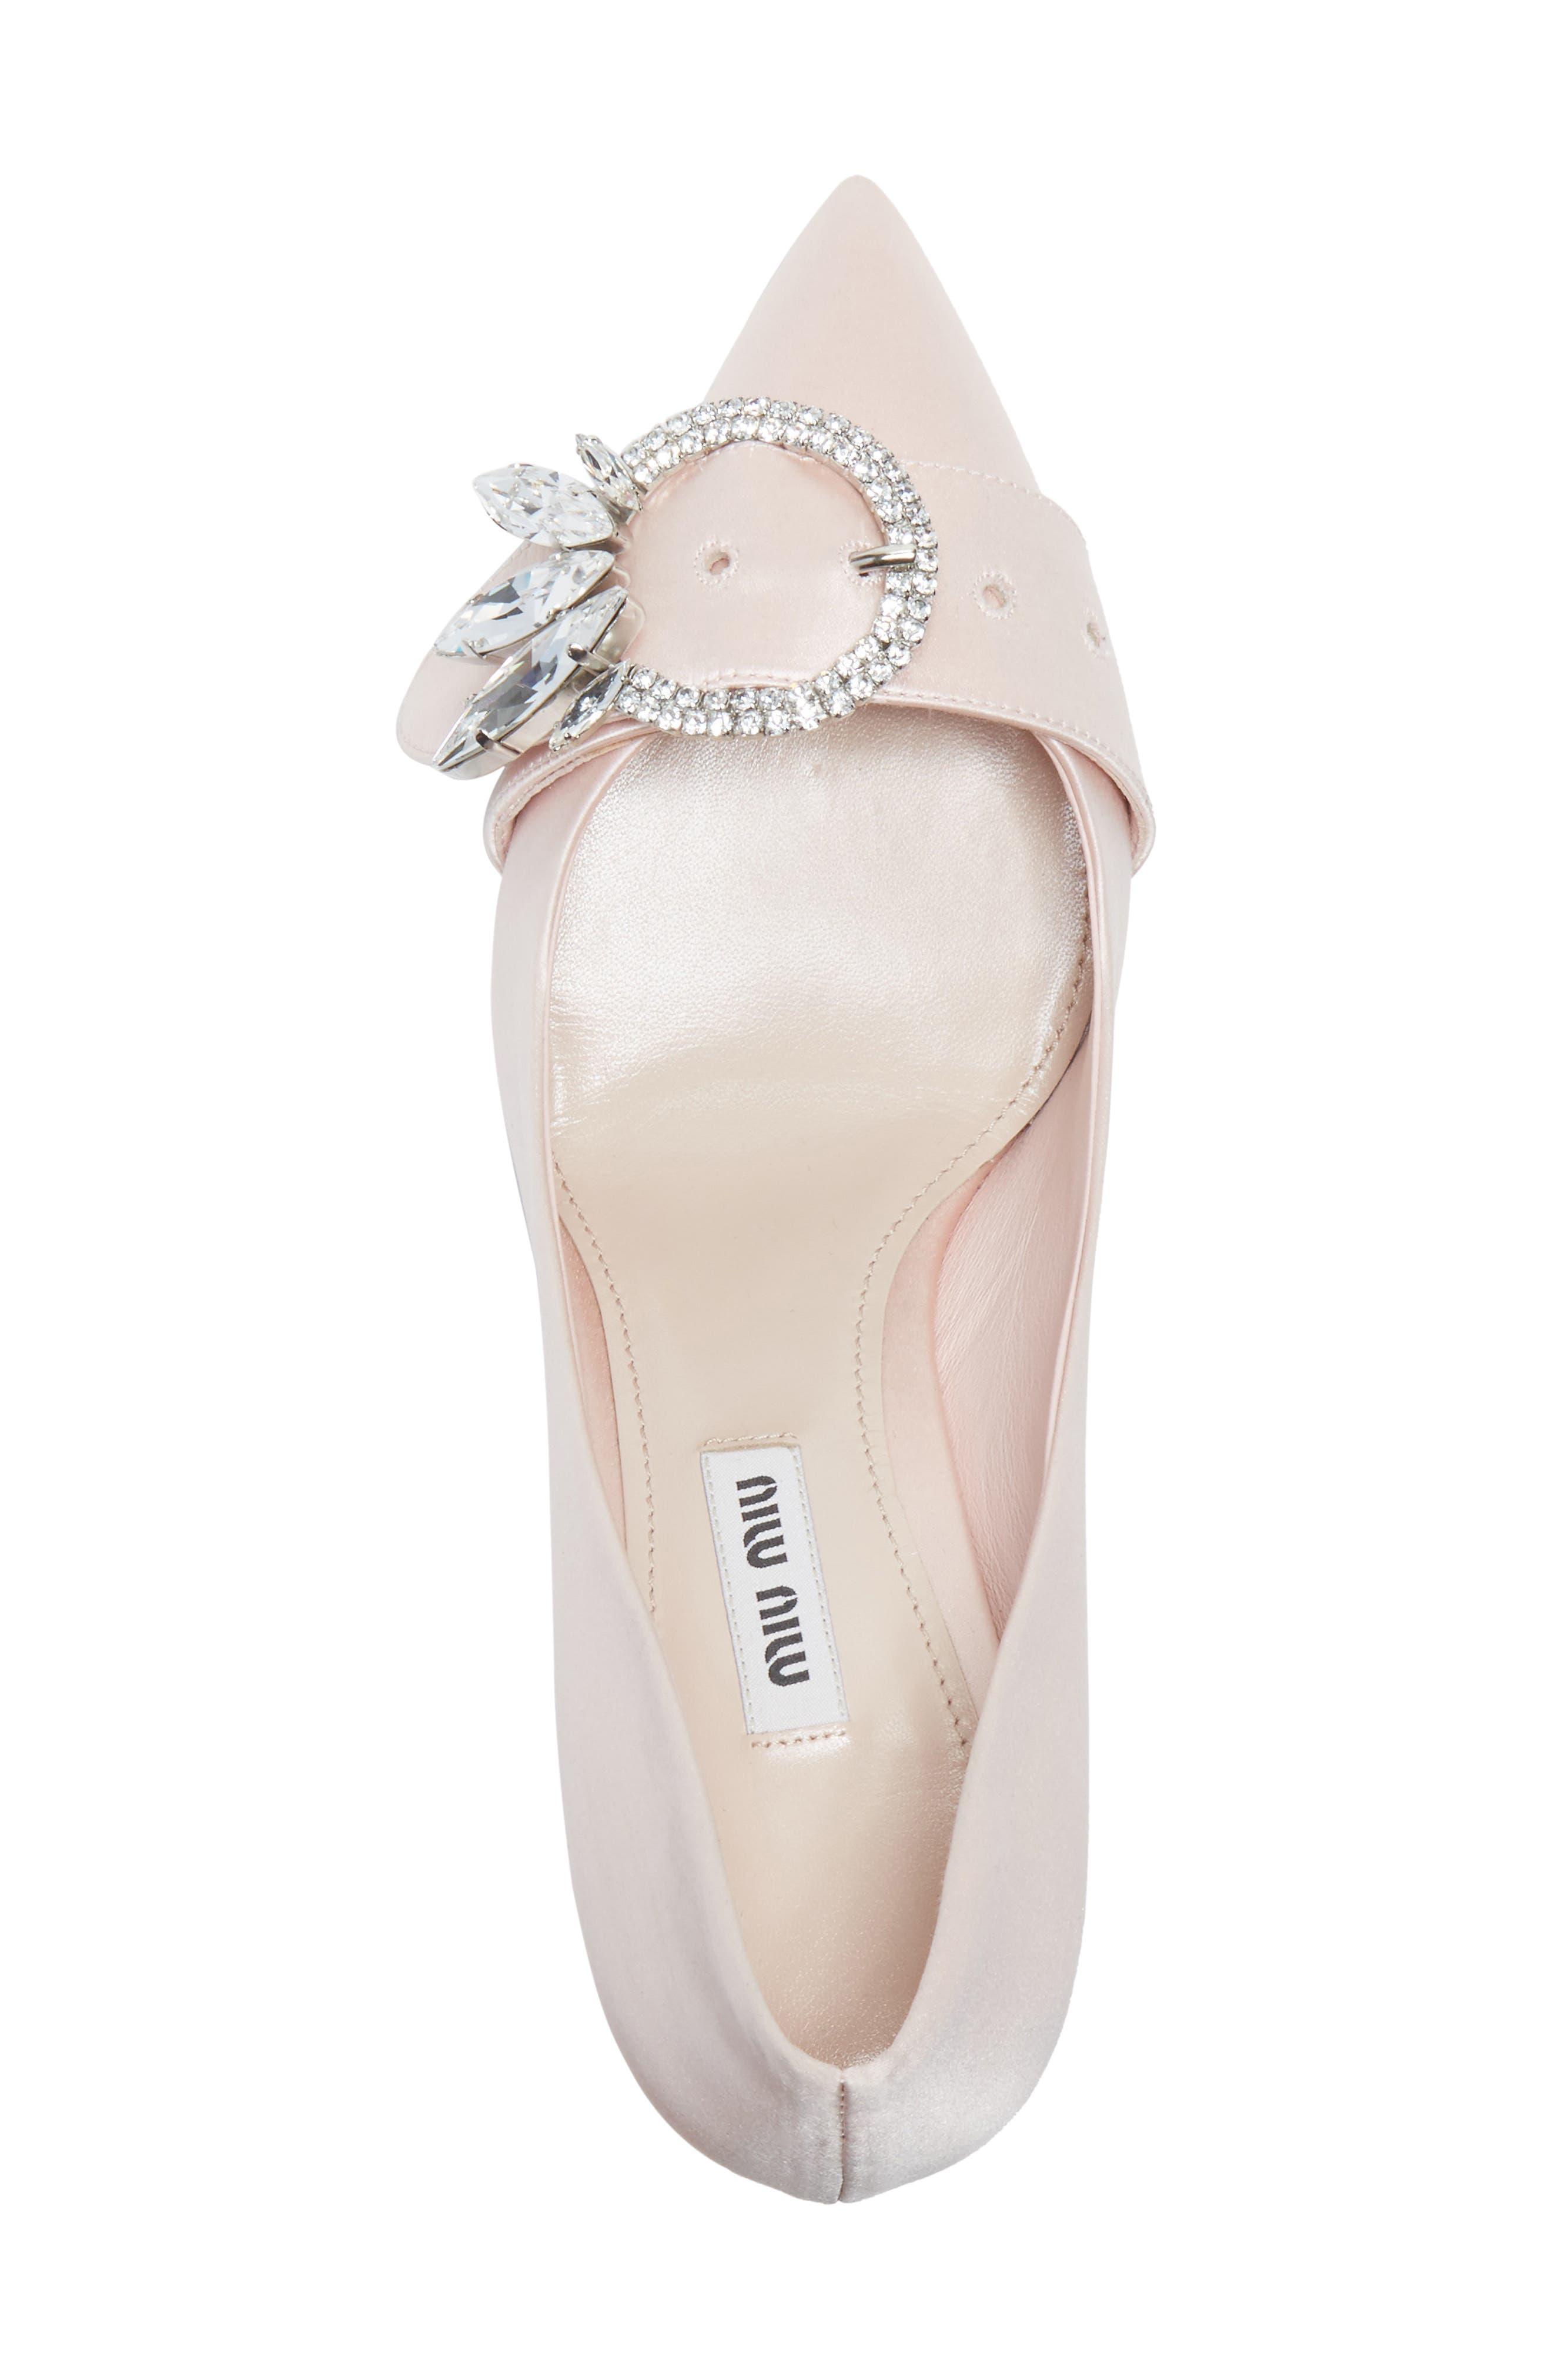 Crystal Buckle Pump,                             Alternate thumbnail 5, color,                             Pink Satin